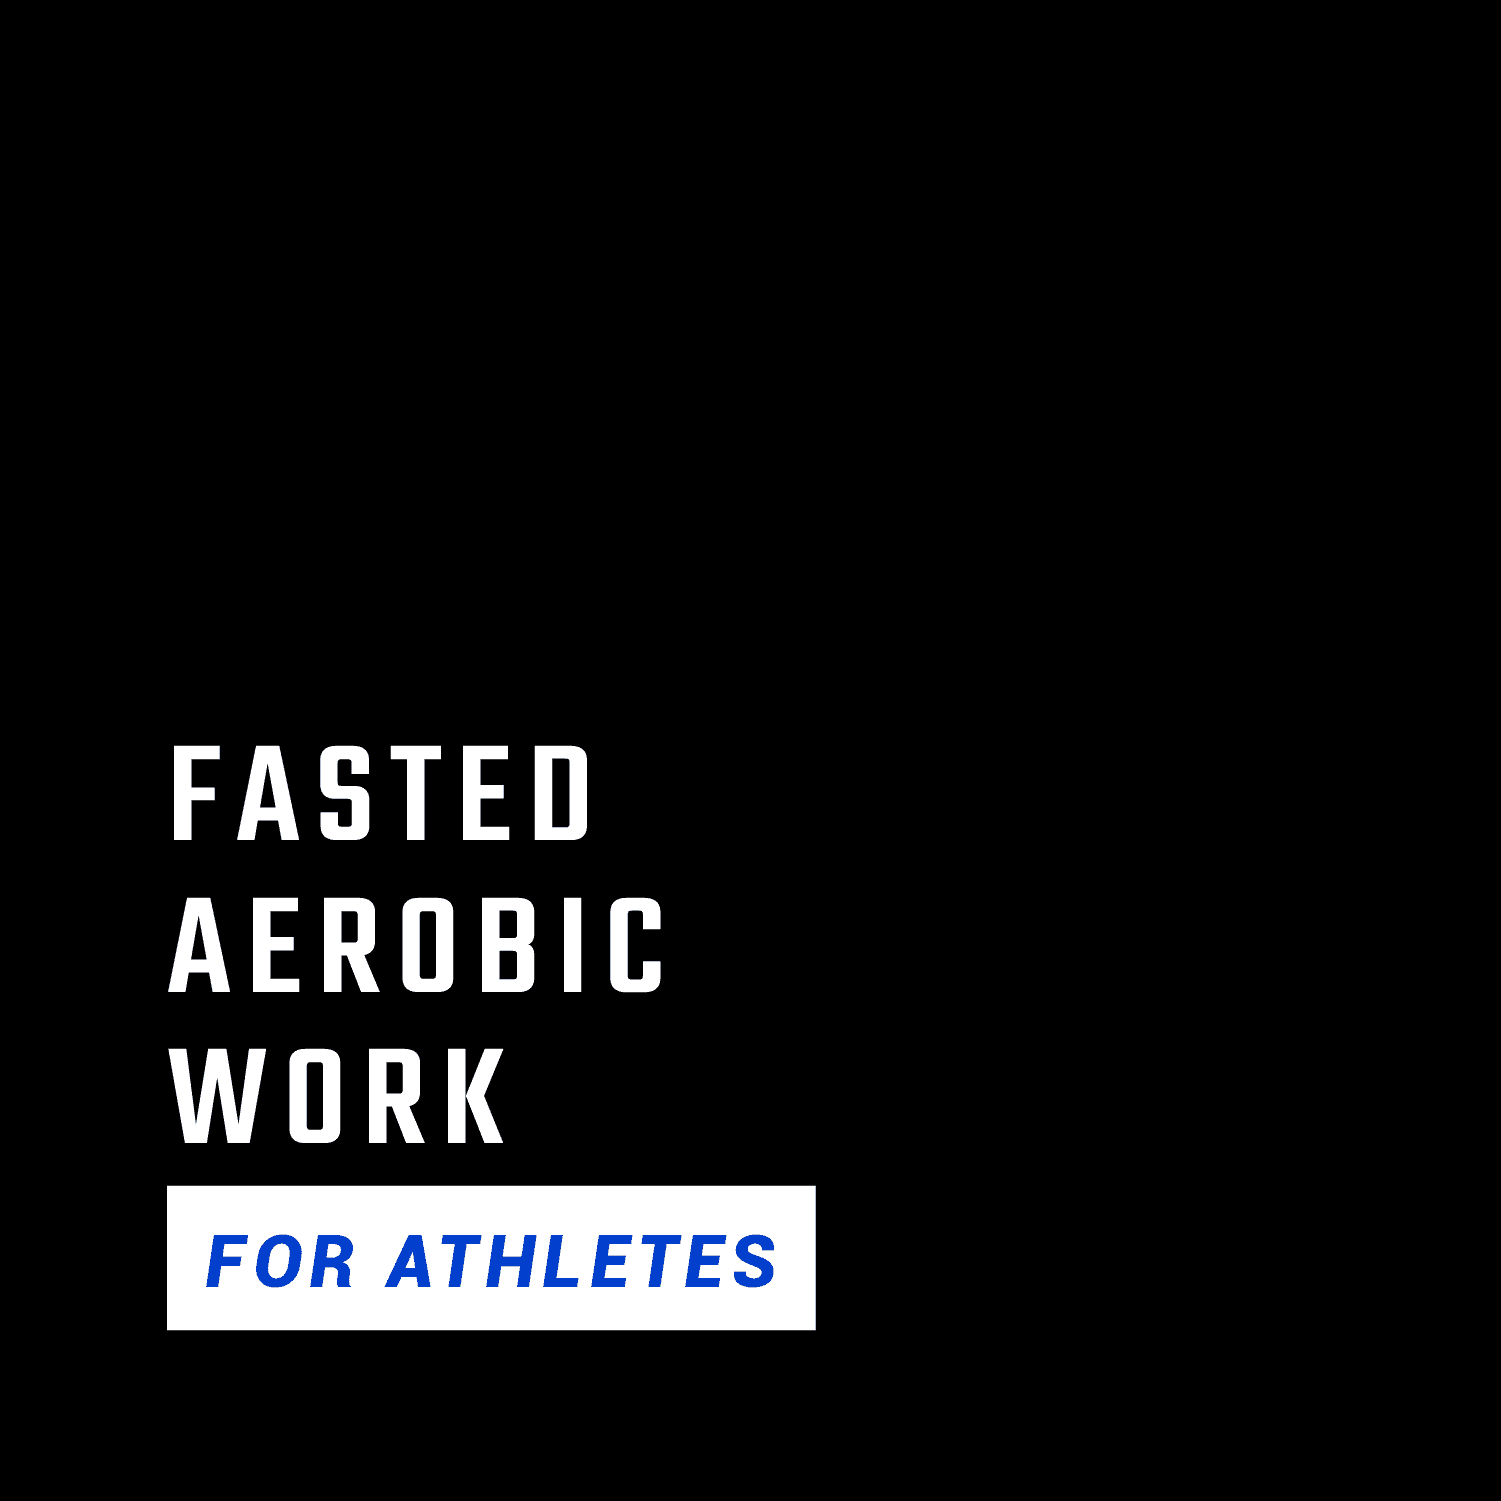 Fasted Aerobic Work